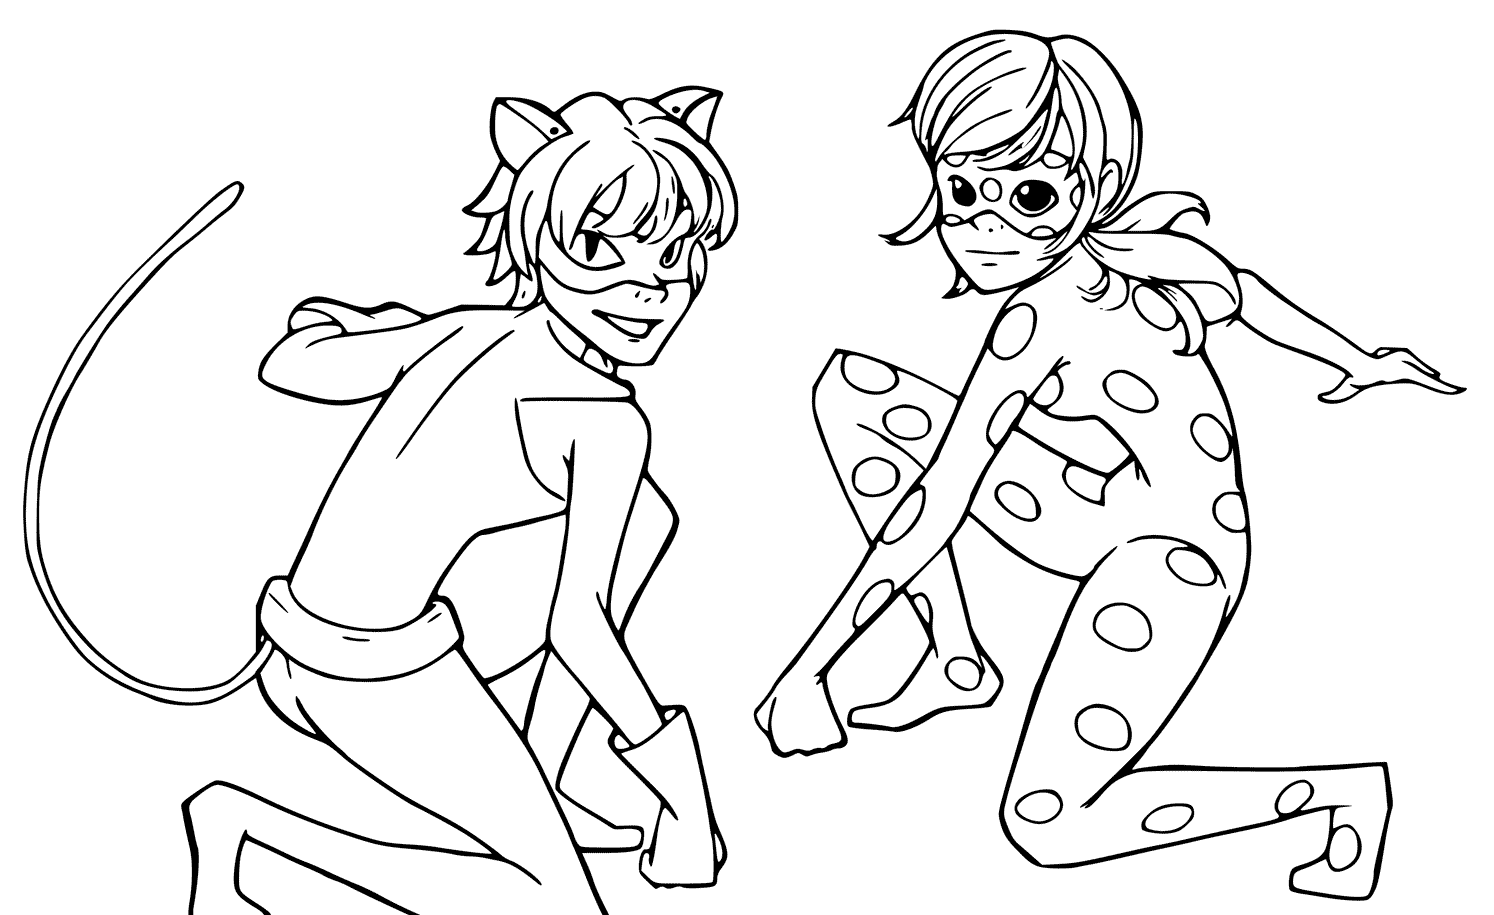 miraculous ladybug season 2 coloring pages, miraculous ladybug kwami coloring pages, miraculous ladybug coloring pages pdf, miraculous cat noir coloring page, ladybug coloring pages for adults, ladybug and cat noir coloring games, free printable miraculous ladybug coloring pages, cartoon ladybug coloring pages